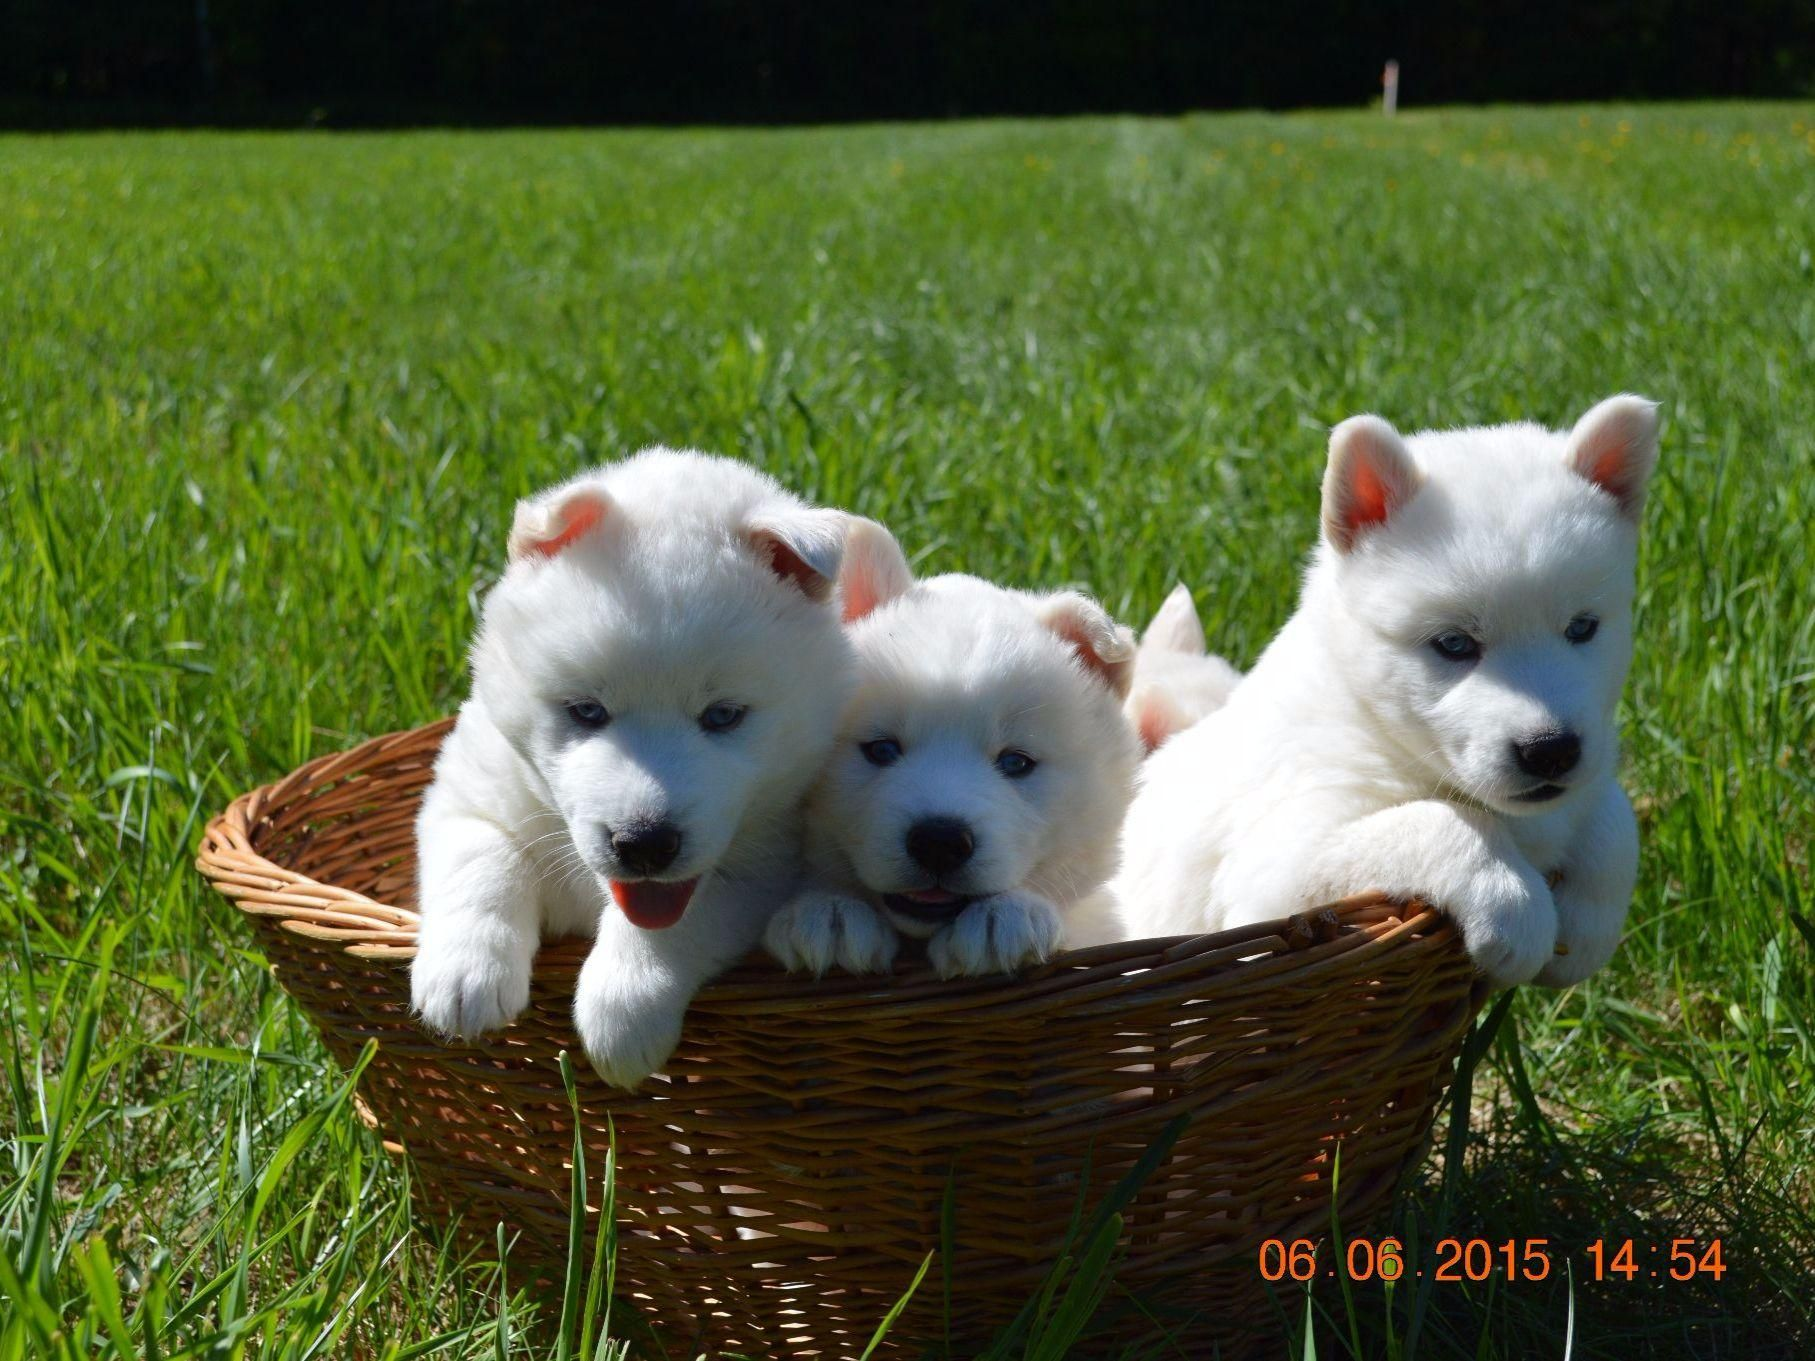 Snow Wooly Husky Has Puppies For Sale On Akc Puppyfinder Husky